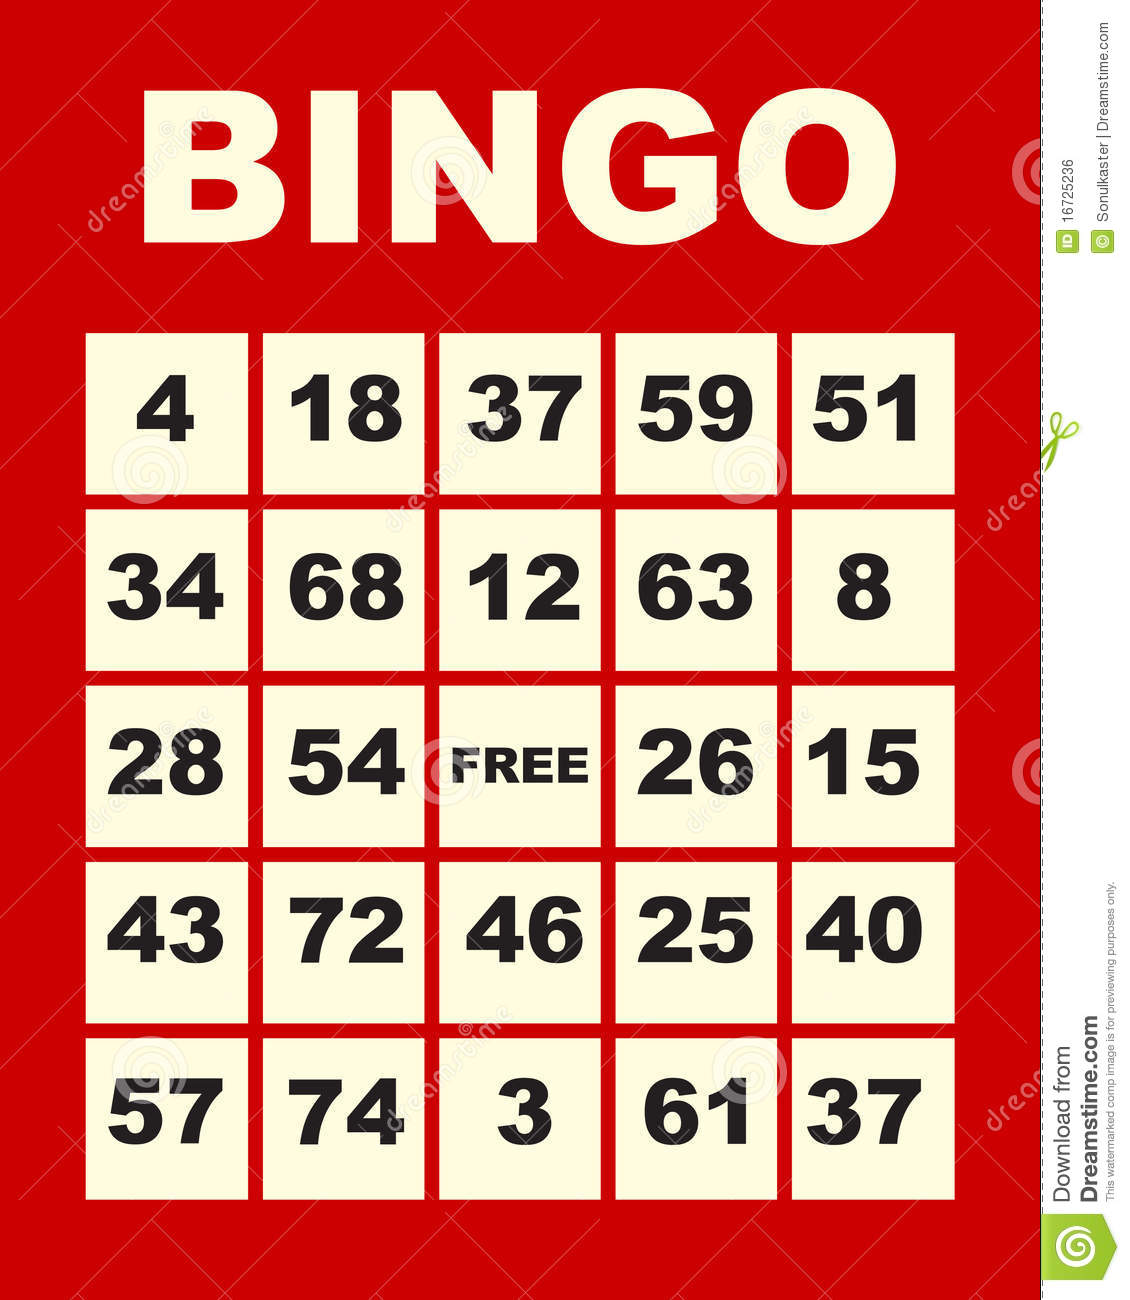 Bingo Card Royalty Free Stock Image - Image: 16725236